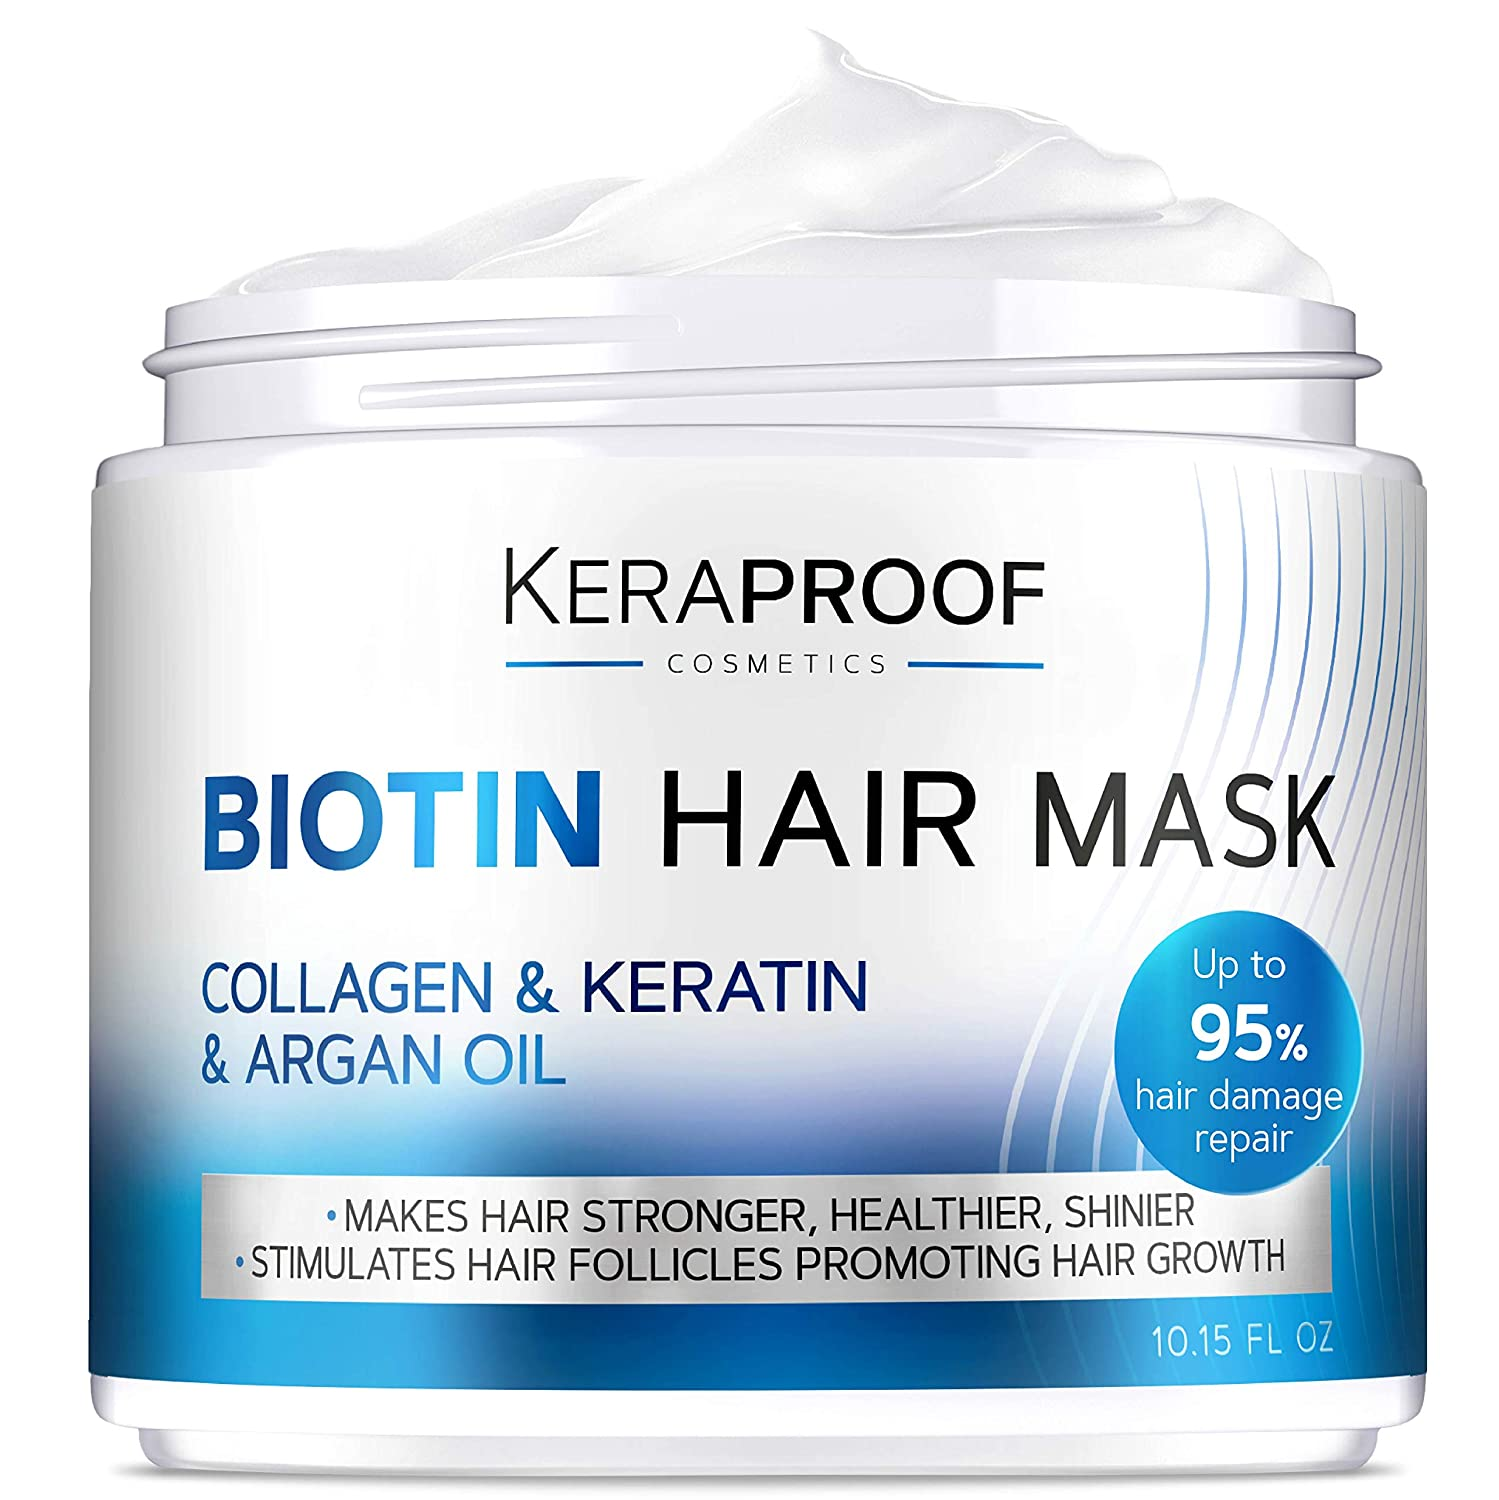 Biotin & Collagen Hair Mask - Keratin Leave In Conditioner for Natural Hair Growth - Deep Care & Repair for Dry, Damaged, Color Treated, Wavy & Curly Hair - Hair & Scalp Treatment for Women - 10 Oz